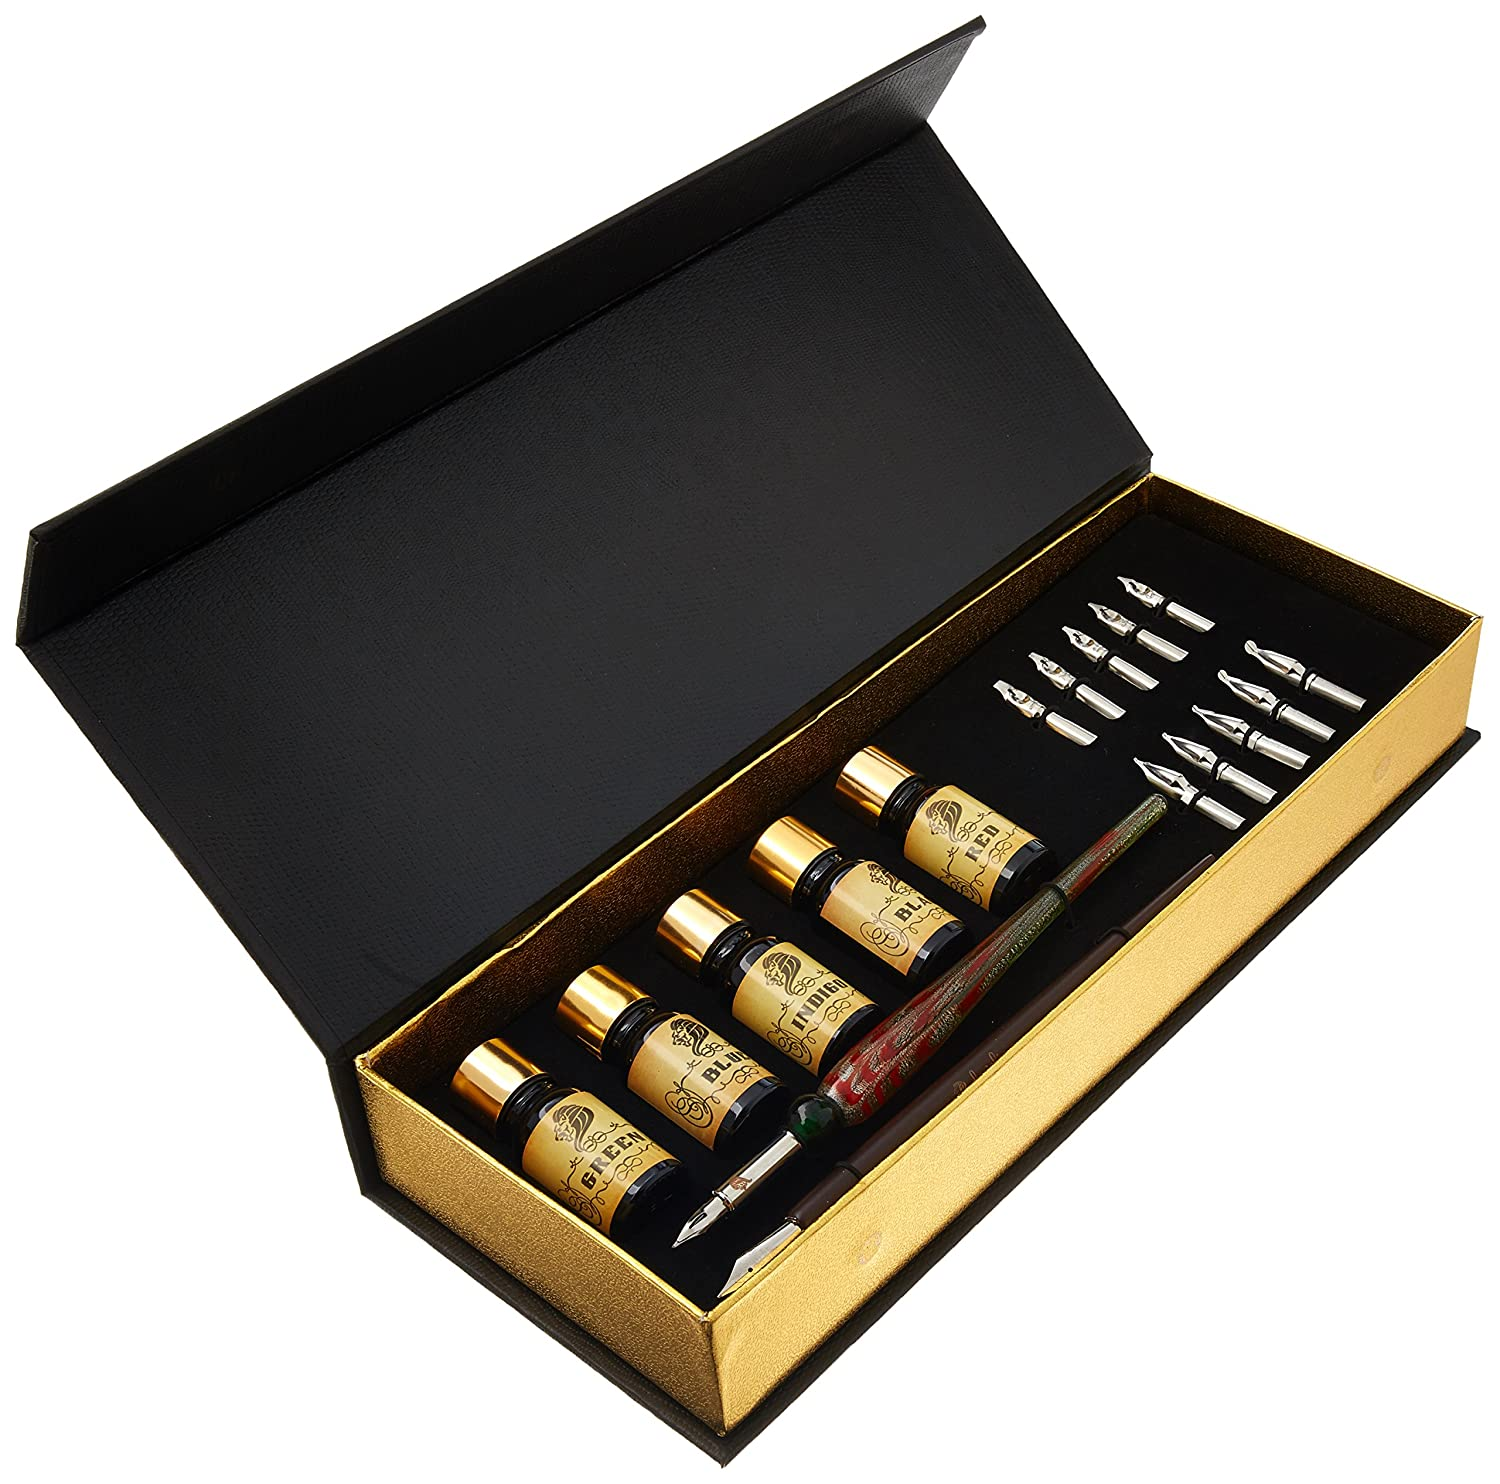 Daveliou Calligraphy Pen Set - 19-Piece Kit - FREE Glass Pen - 12 Nib & 5 Ink Set